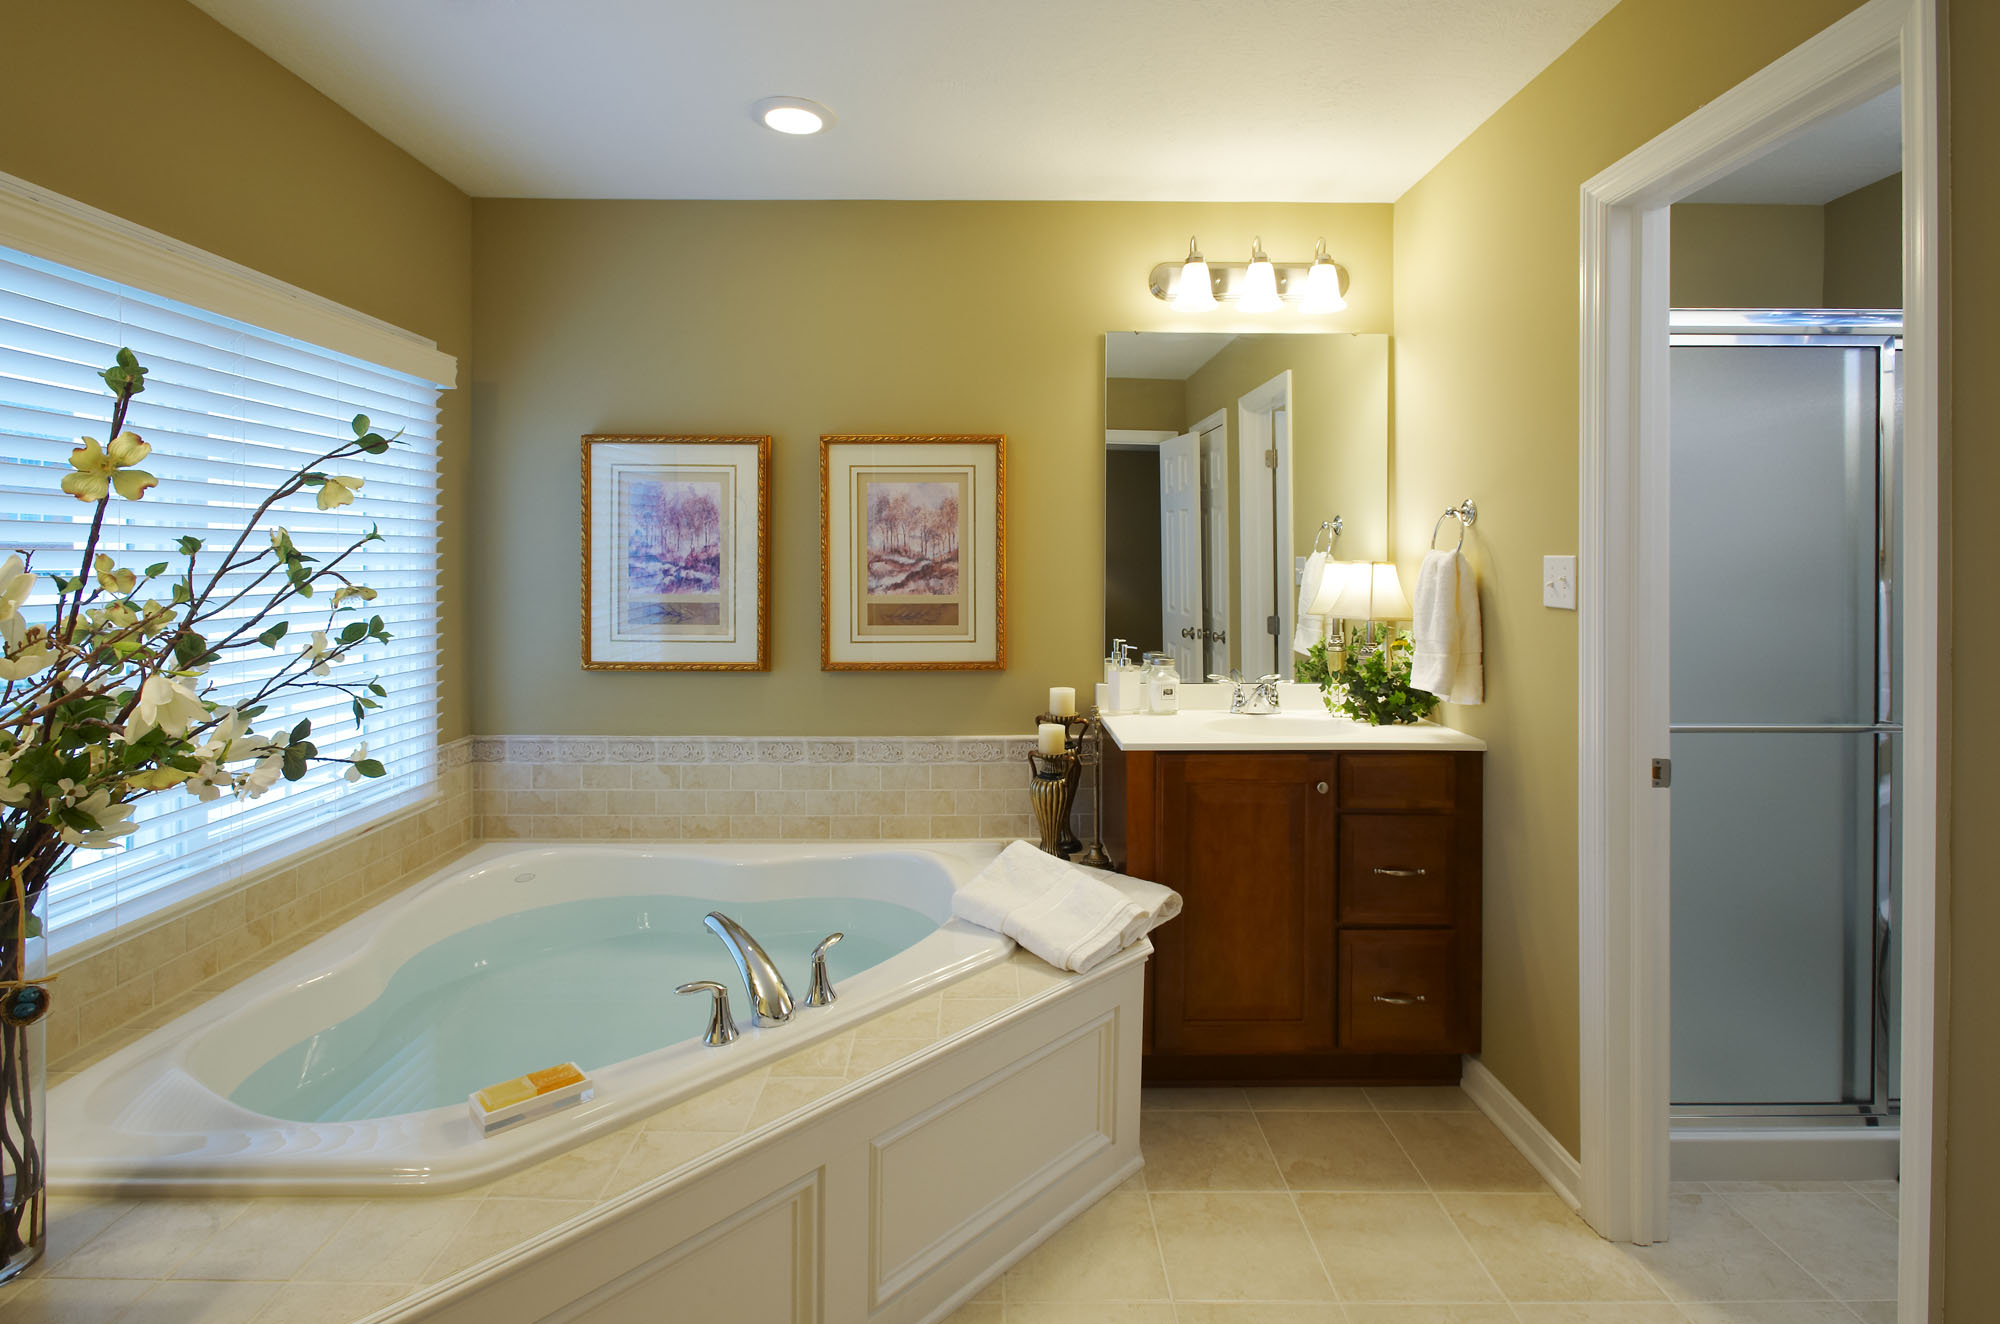 Model home bathroom pictures - 17 varities of looking your ... on Model Bathroom Ideas  id=46739